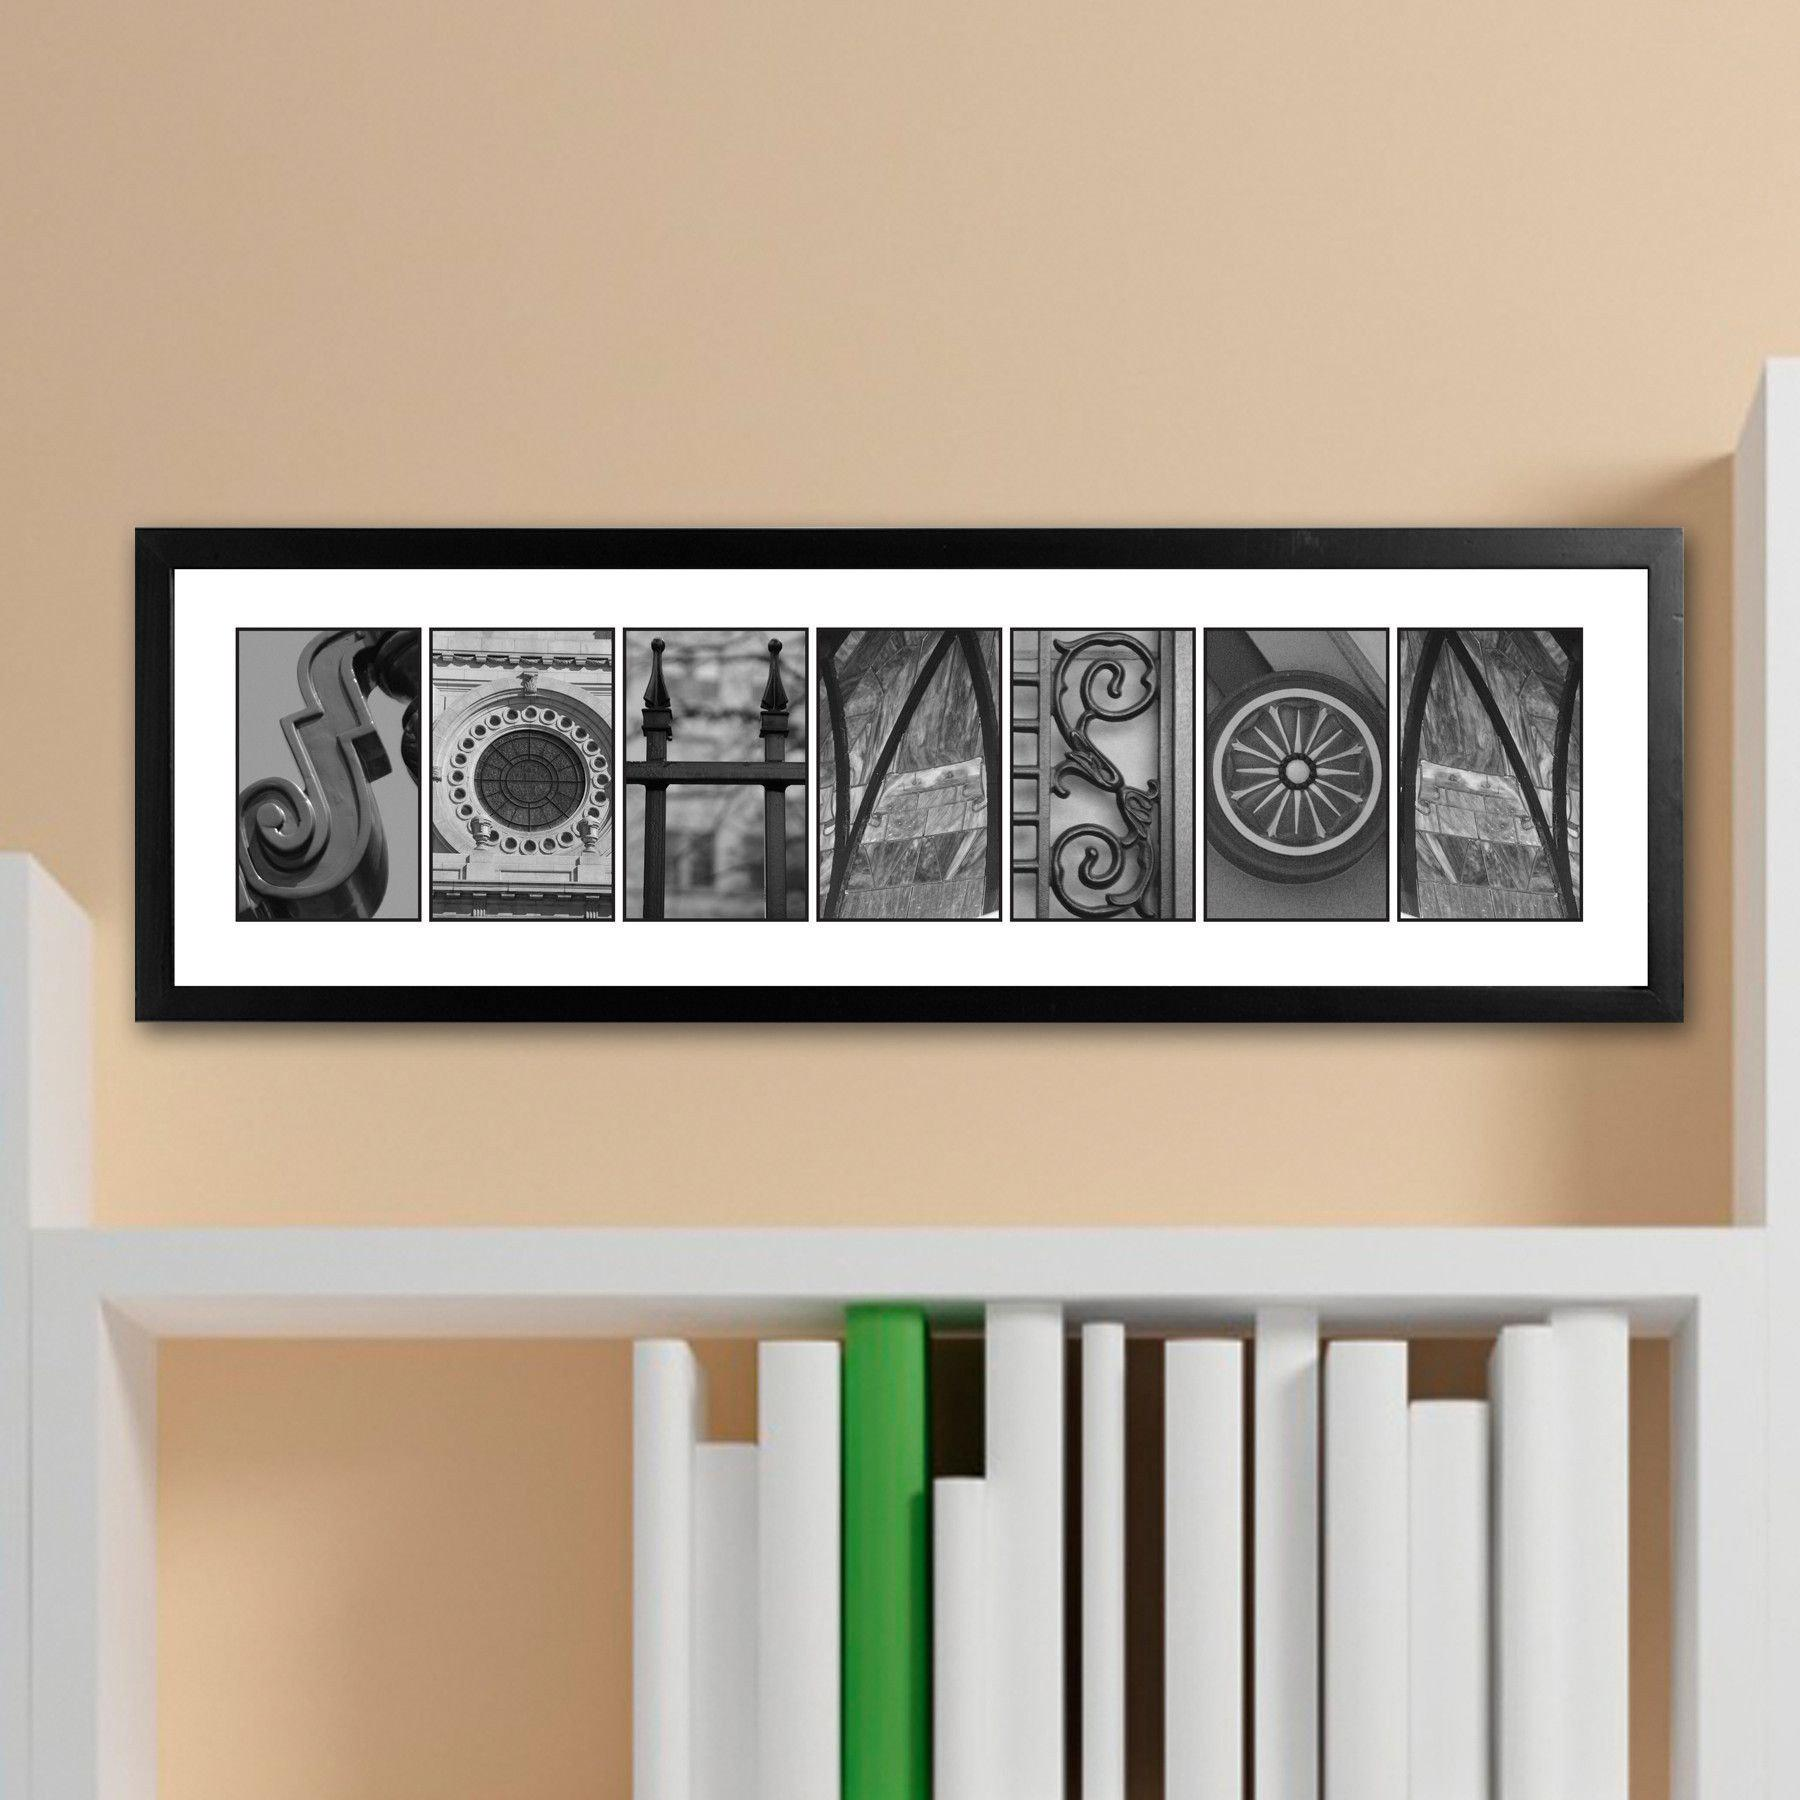 Personalized-Family-Name-Sings-Architectural-Elements-Alphabet-Black-and-White